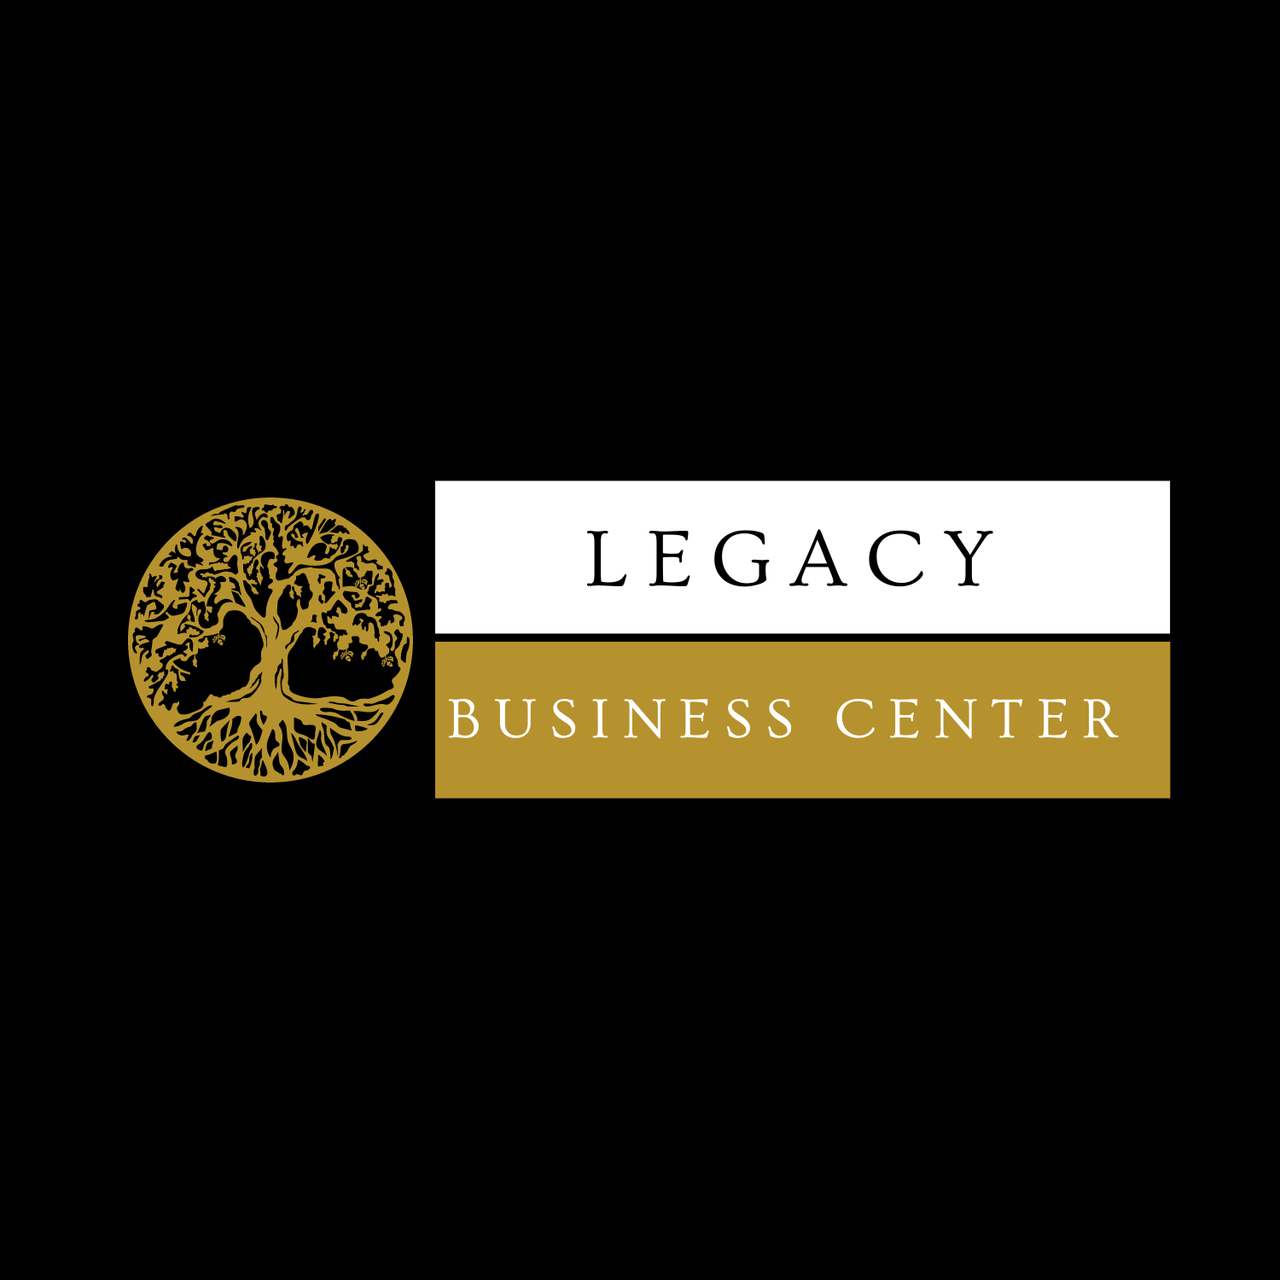 Legacy Business Center